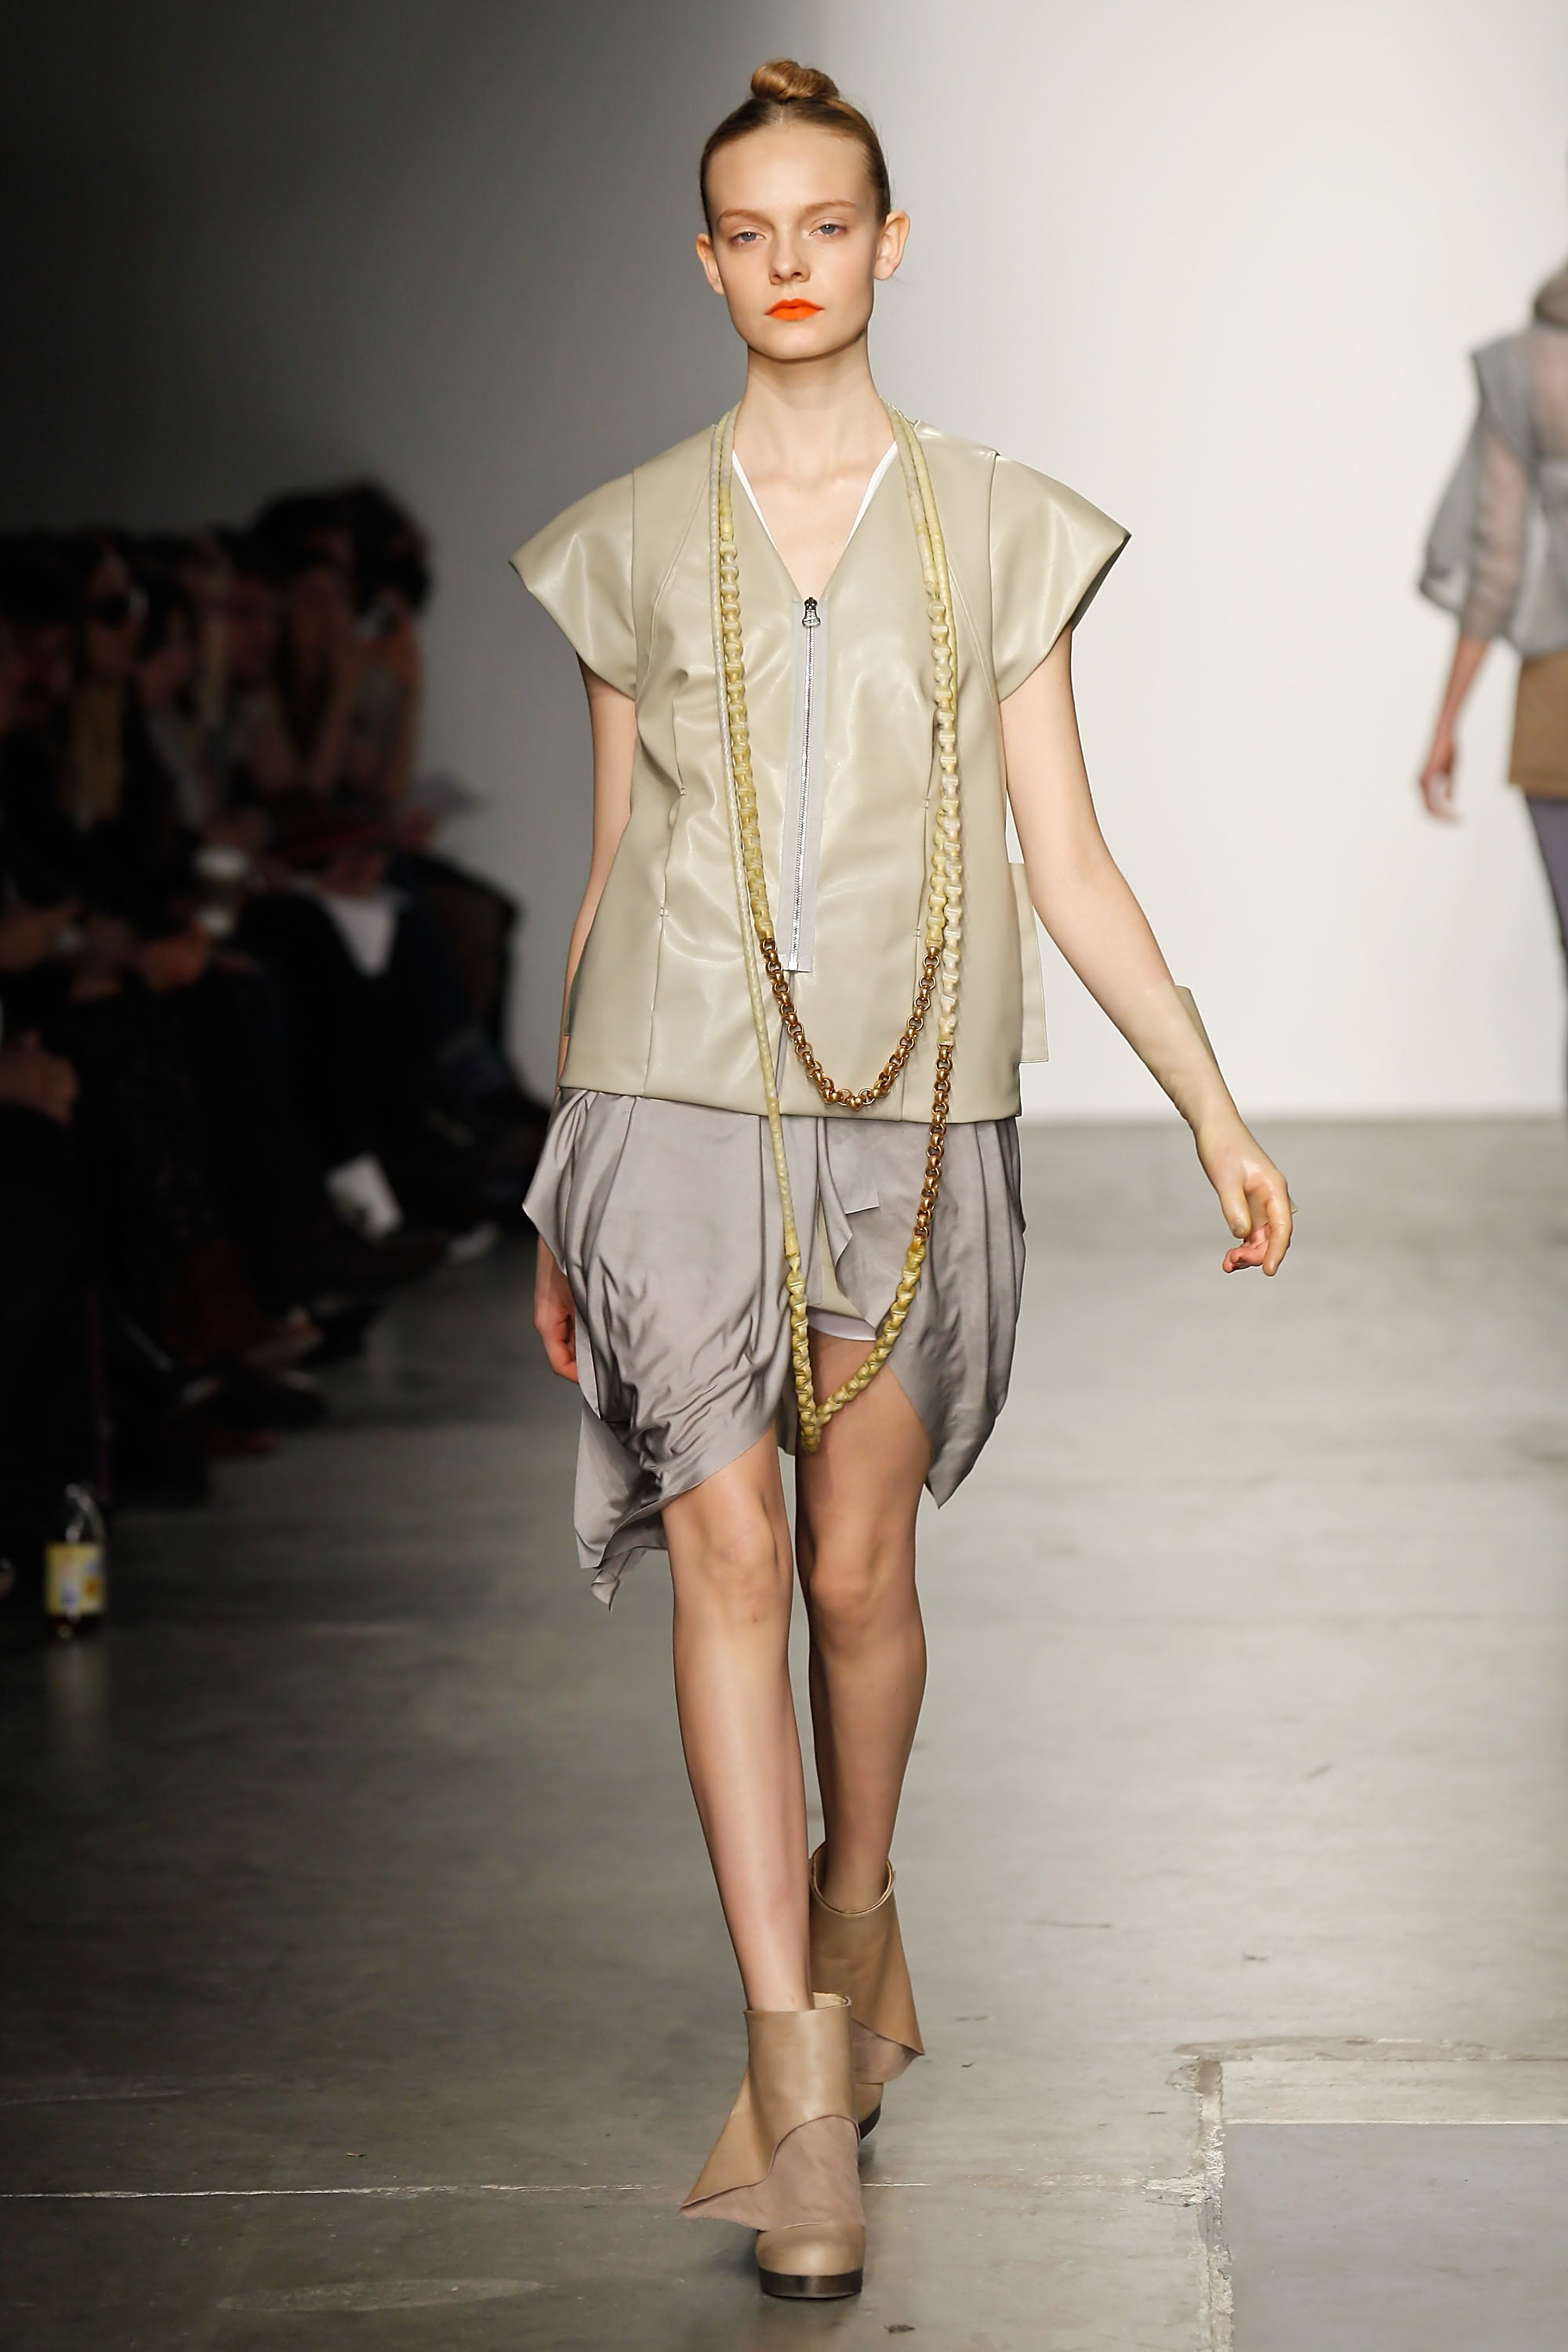 Victoria Bartlett Creates Latex Trench Coats and Skin Suits For VPL's Fall 2011 Collection